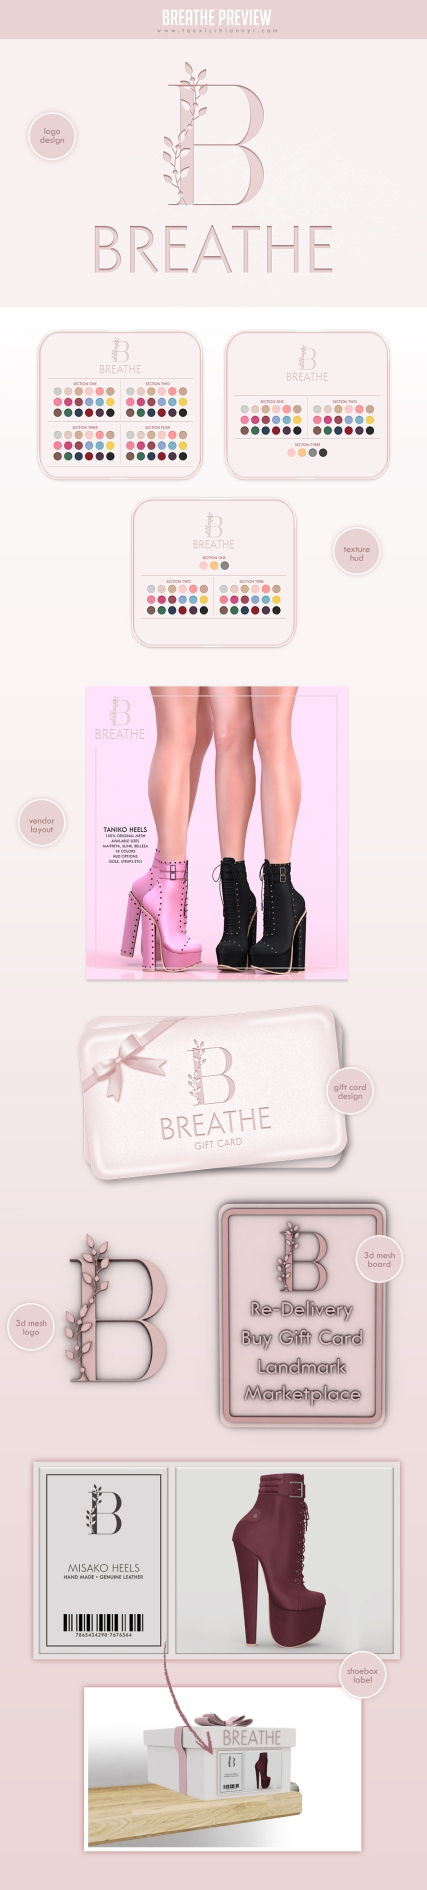 breathe_preview